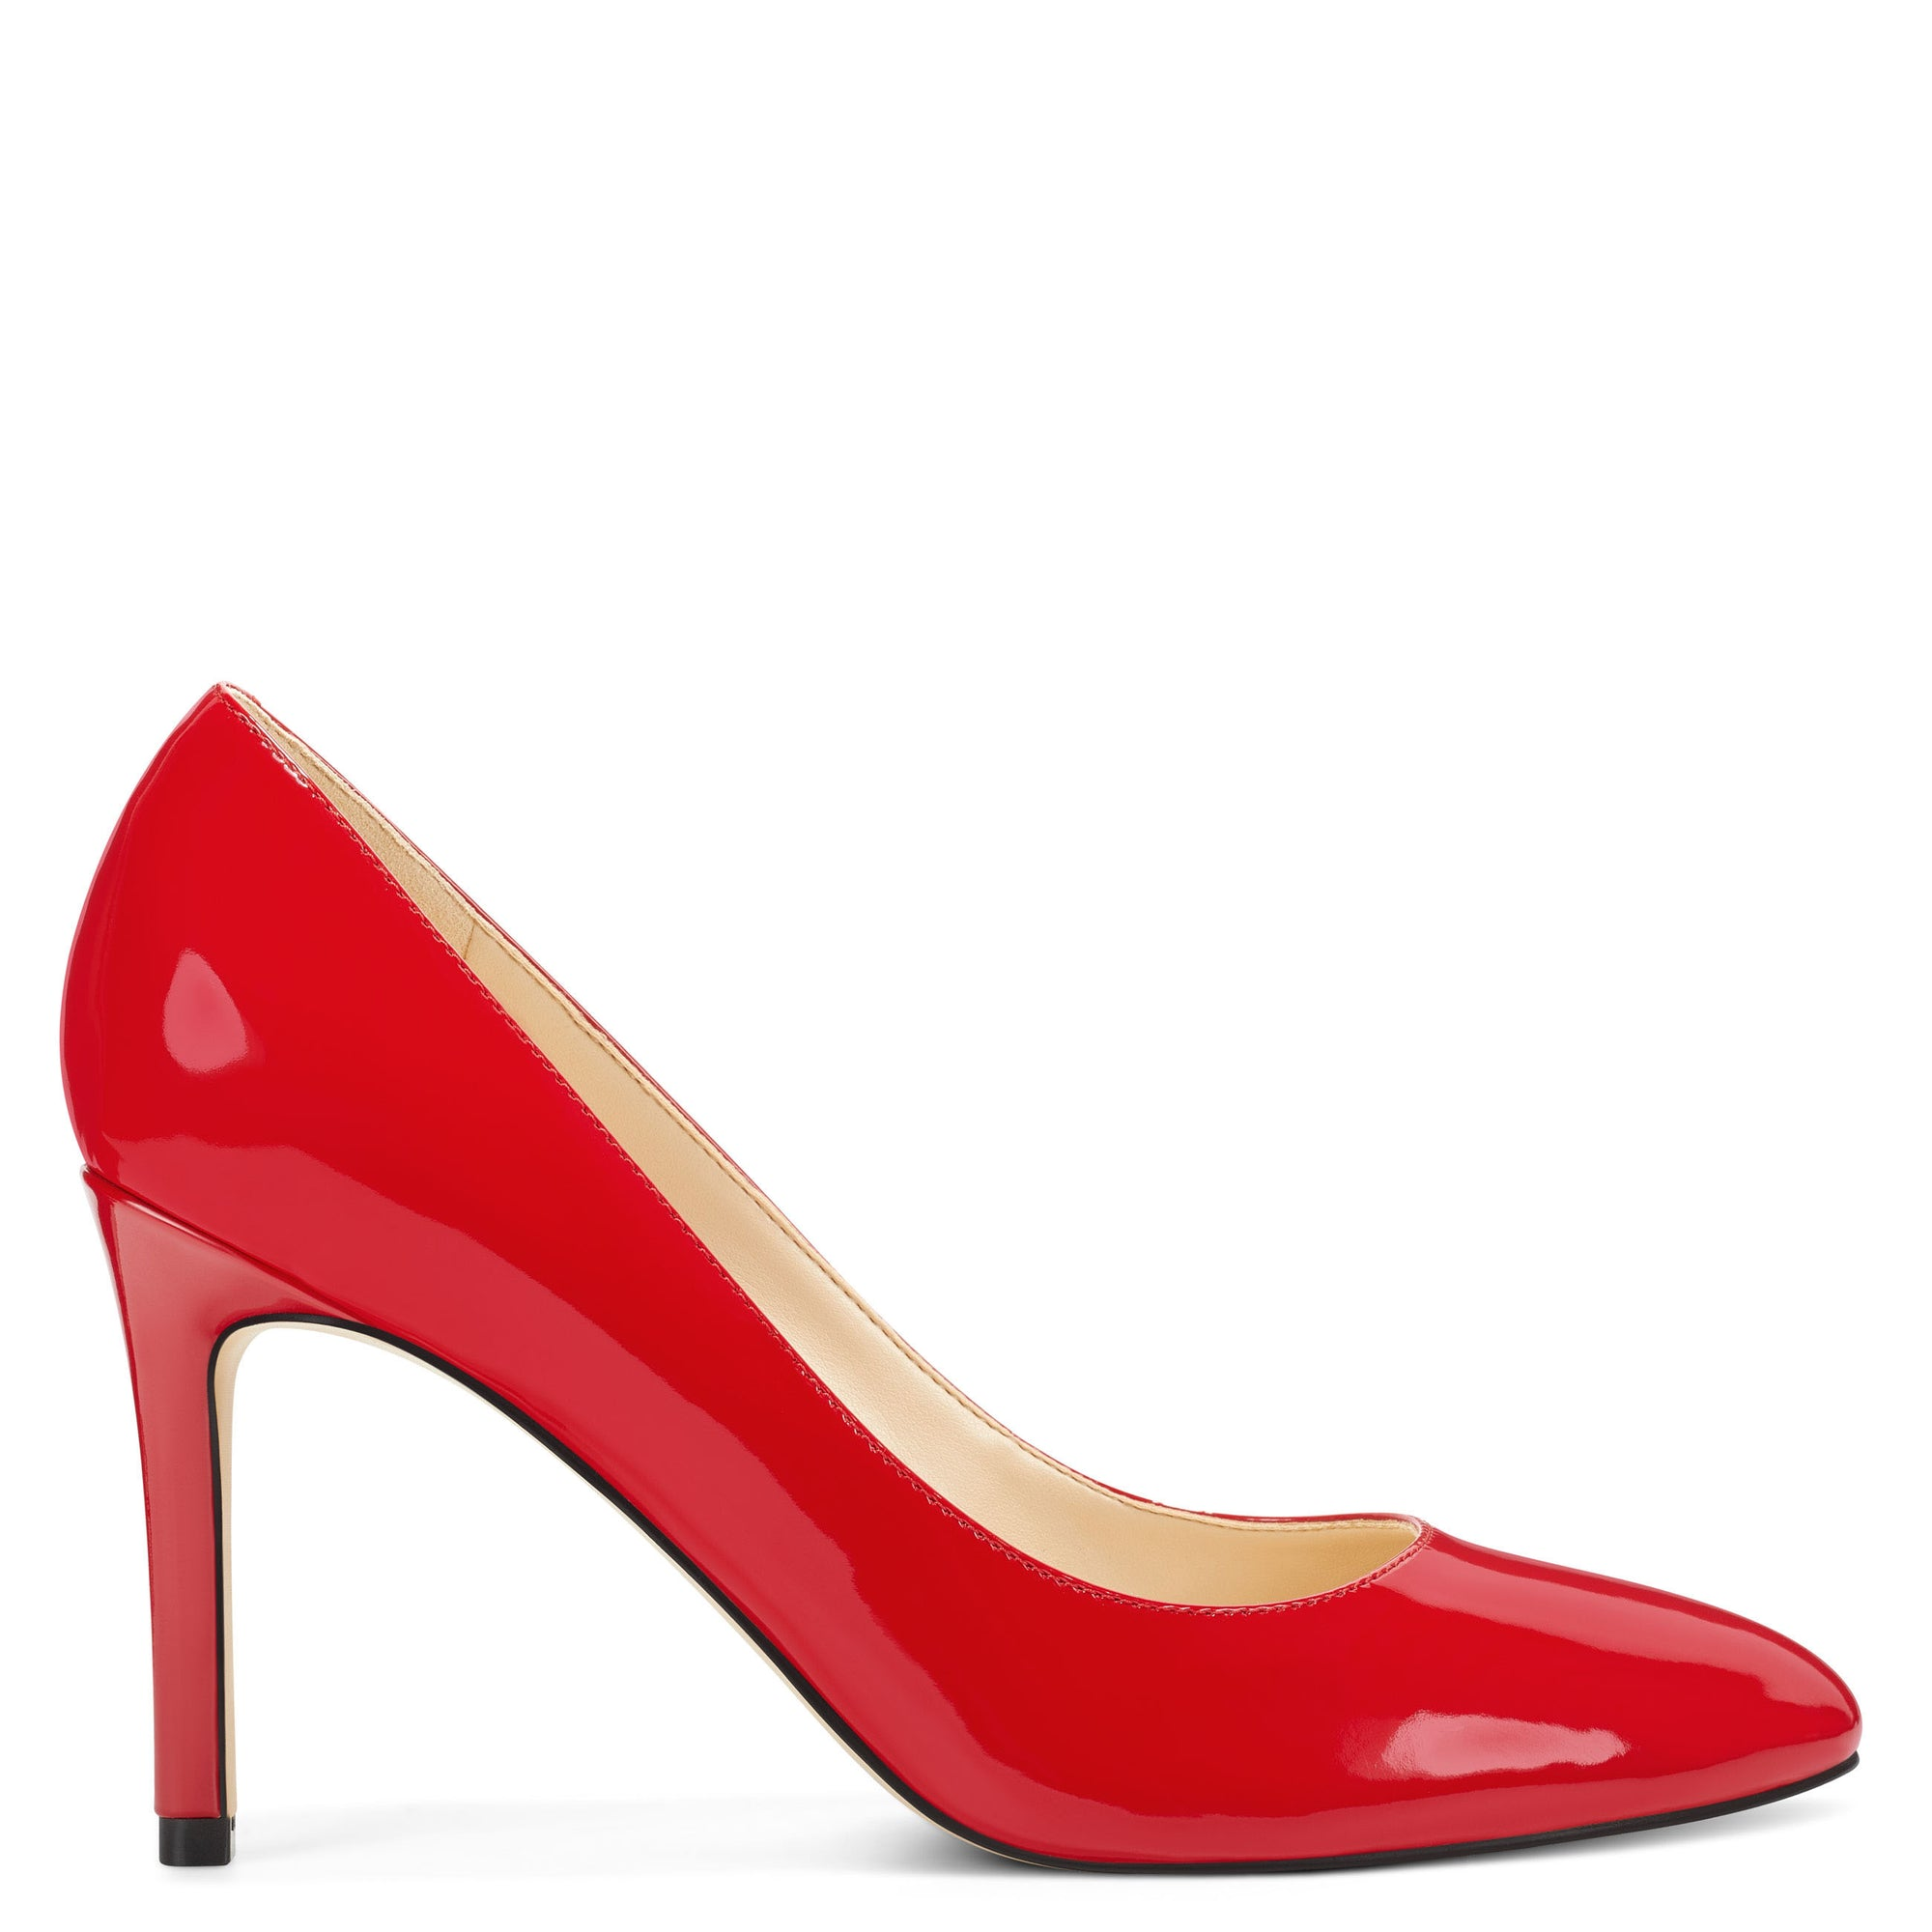 dylan-round-toe-pumps-in-red-leather